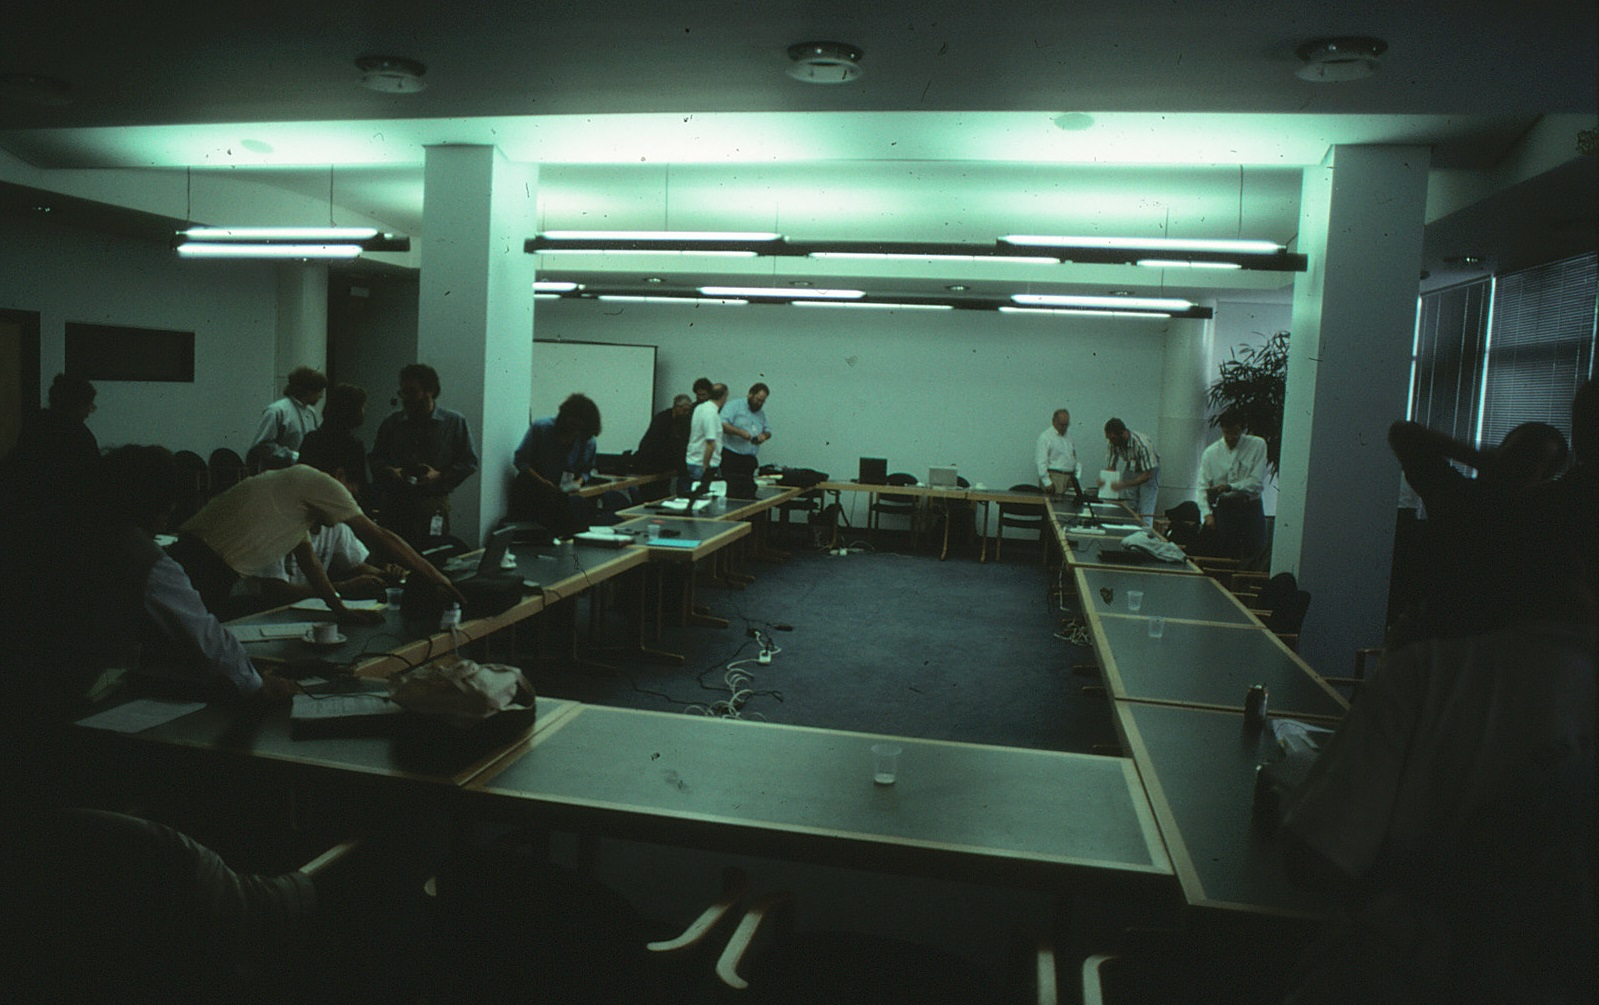 Meeting of the international standards committee for the C++ programming language, hosted at the British Standards Institution in 1997